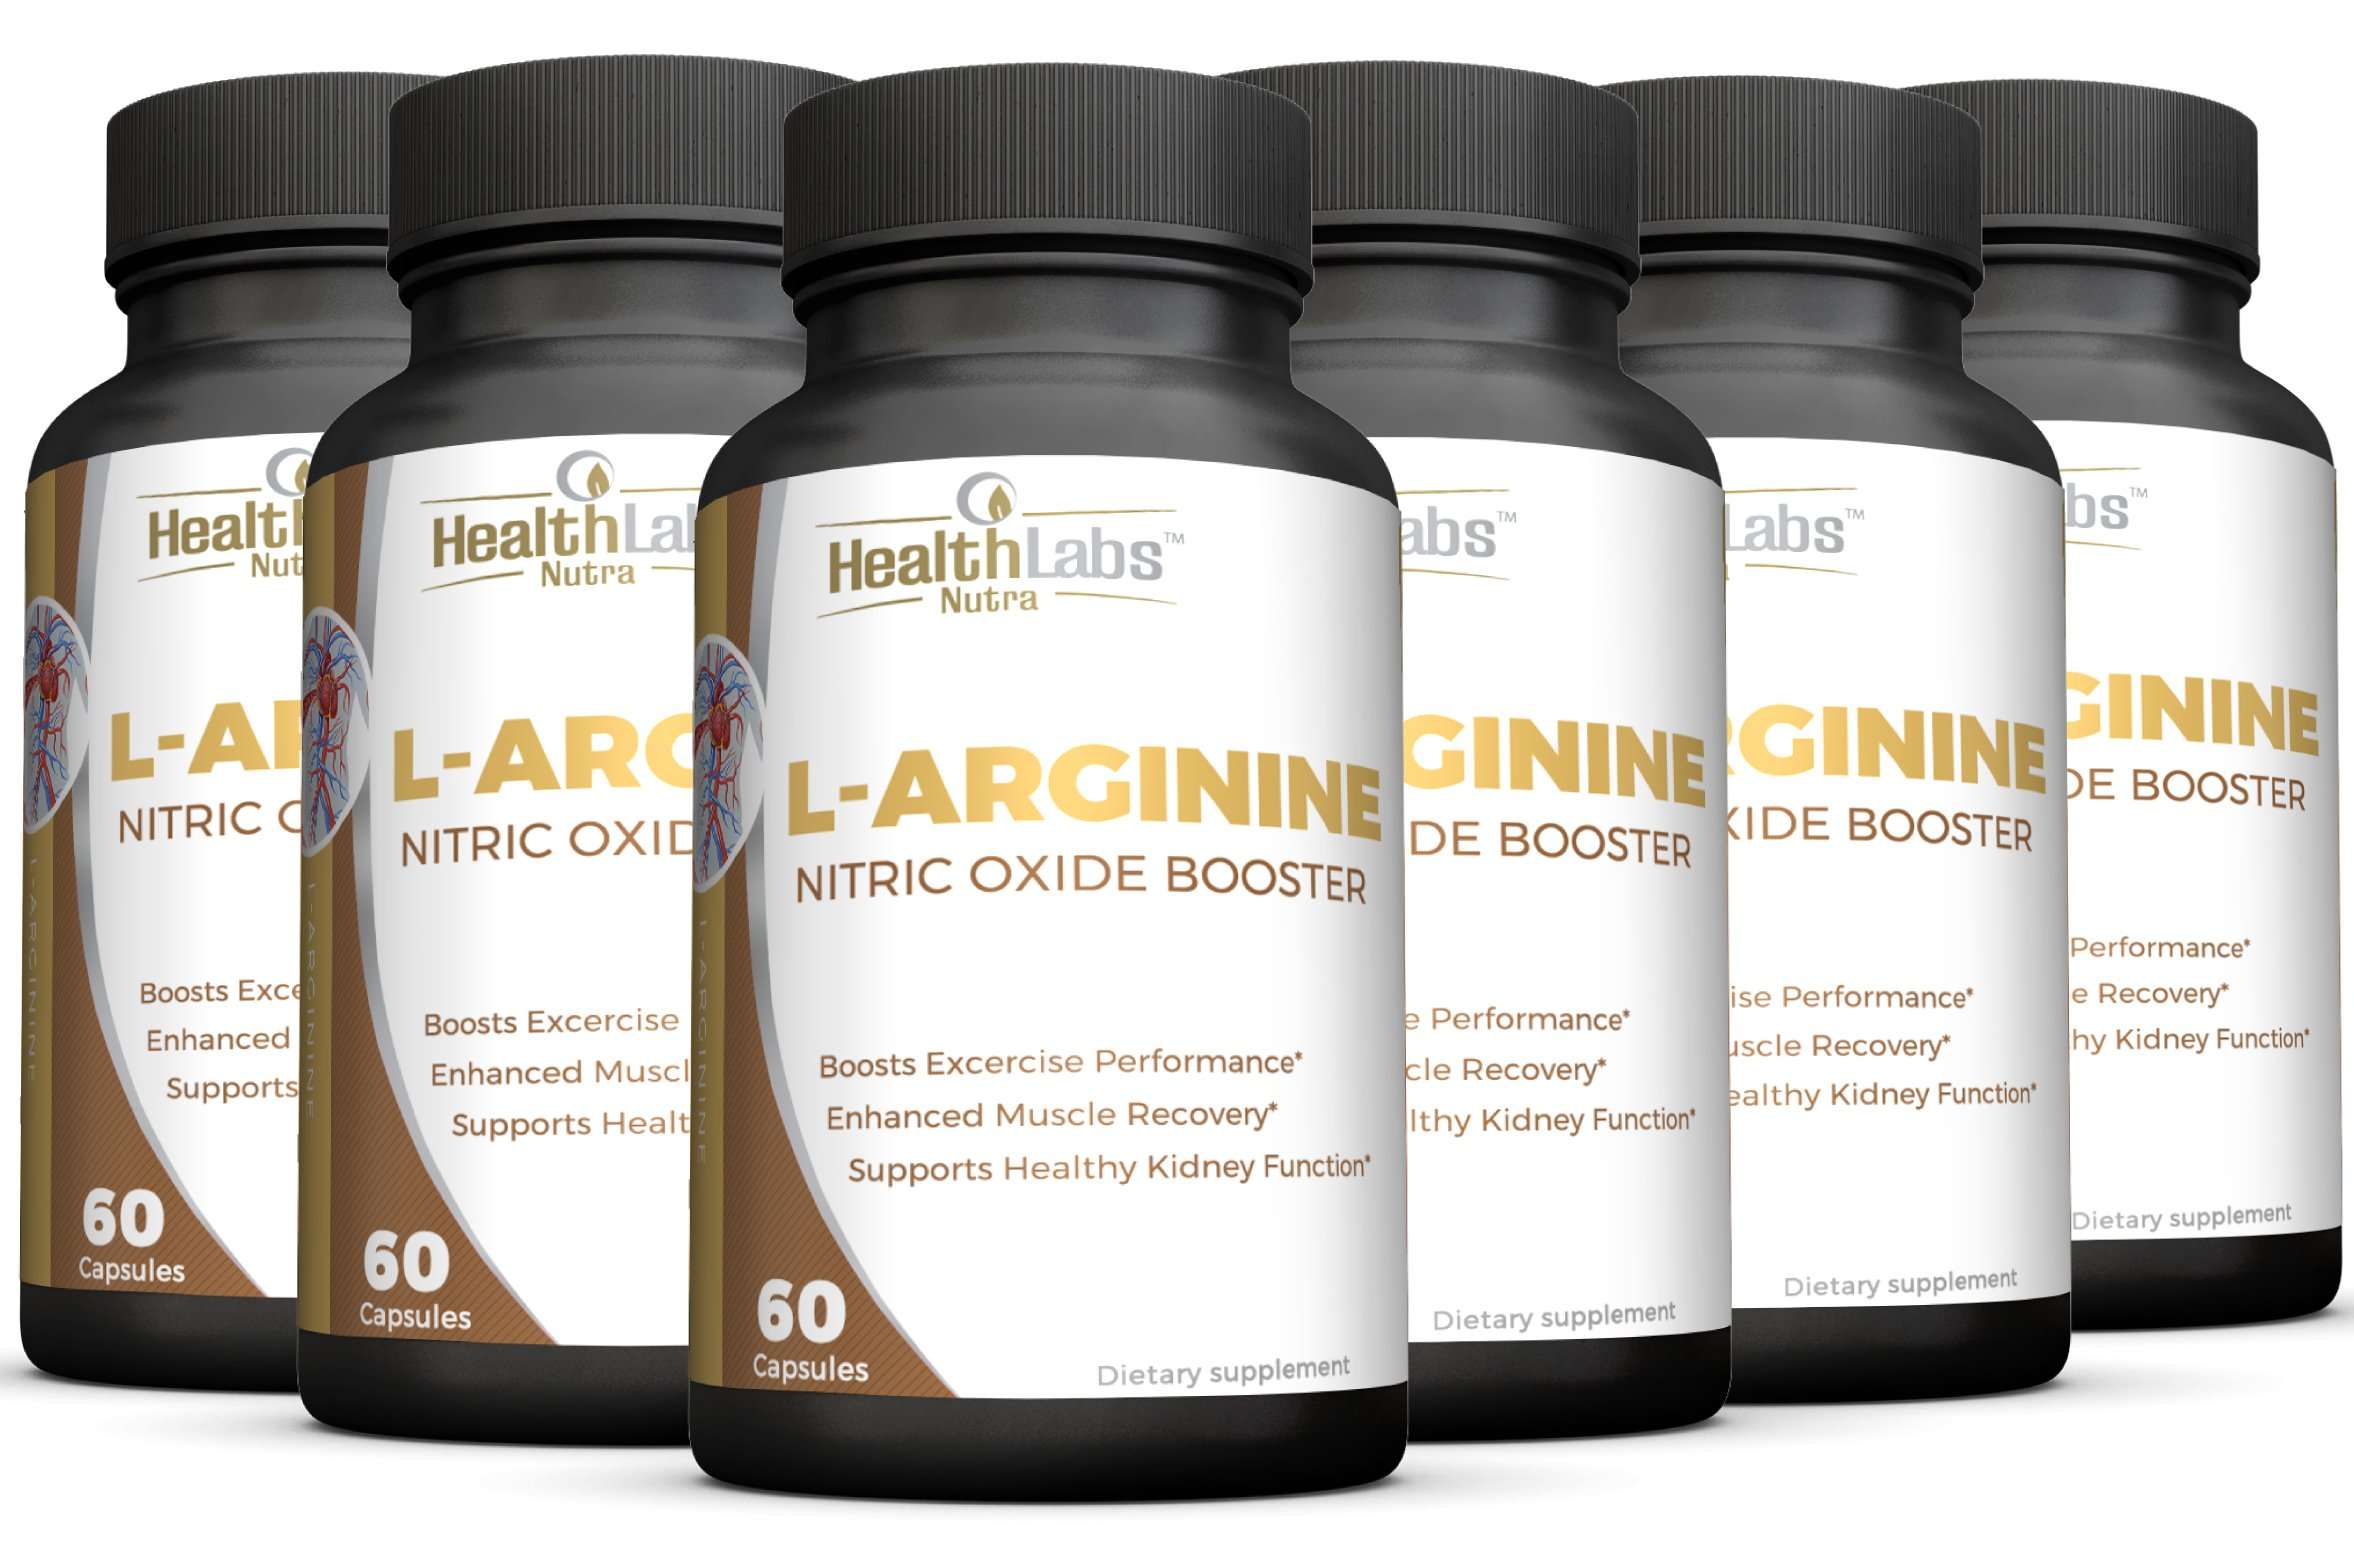 Max Strength L-Arginine -1200mg Nitric Oxide Pre-Workout Supplement with L-Citrulline for Muscle Growth, Endurance, Energy & Vascularity - 6-Month Supply